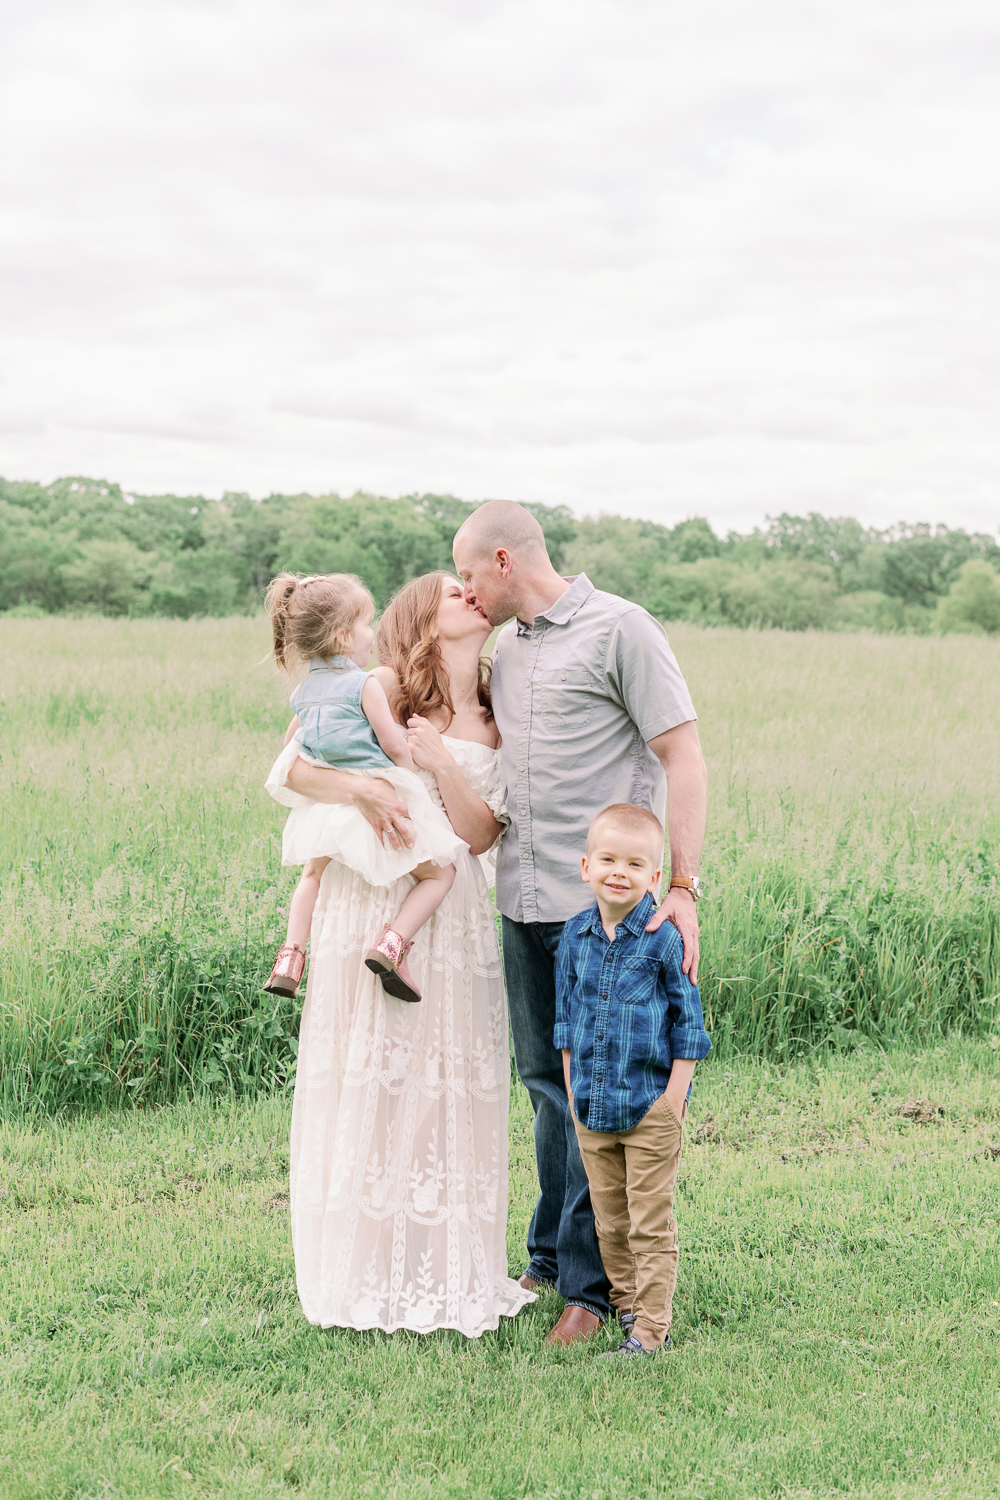 Chicago Naples Lifestyle Family Photographer – St James Farm Family Photos-23